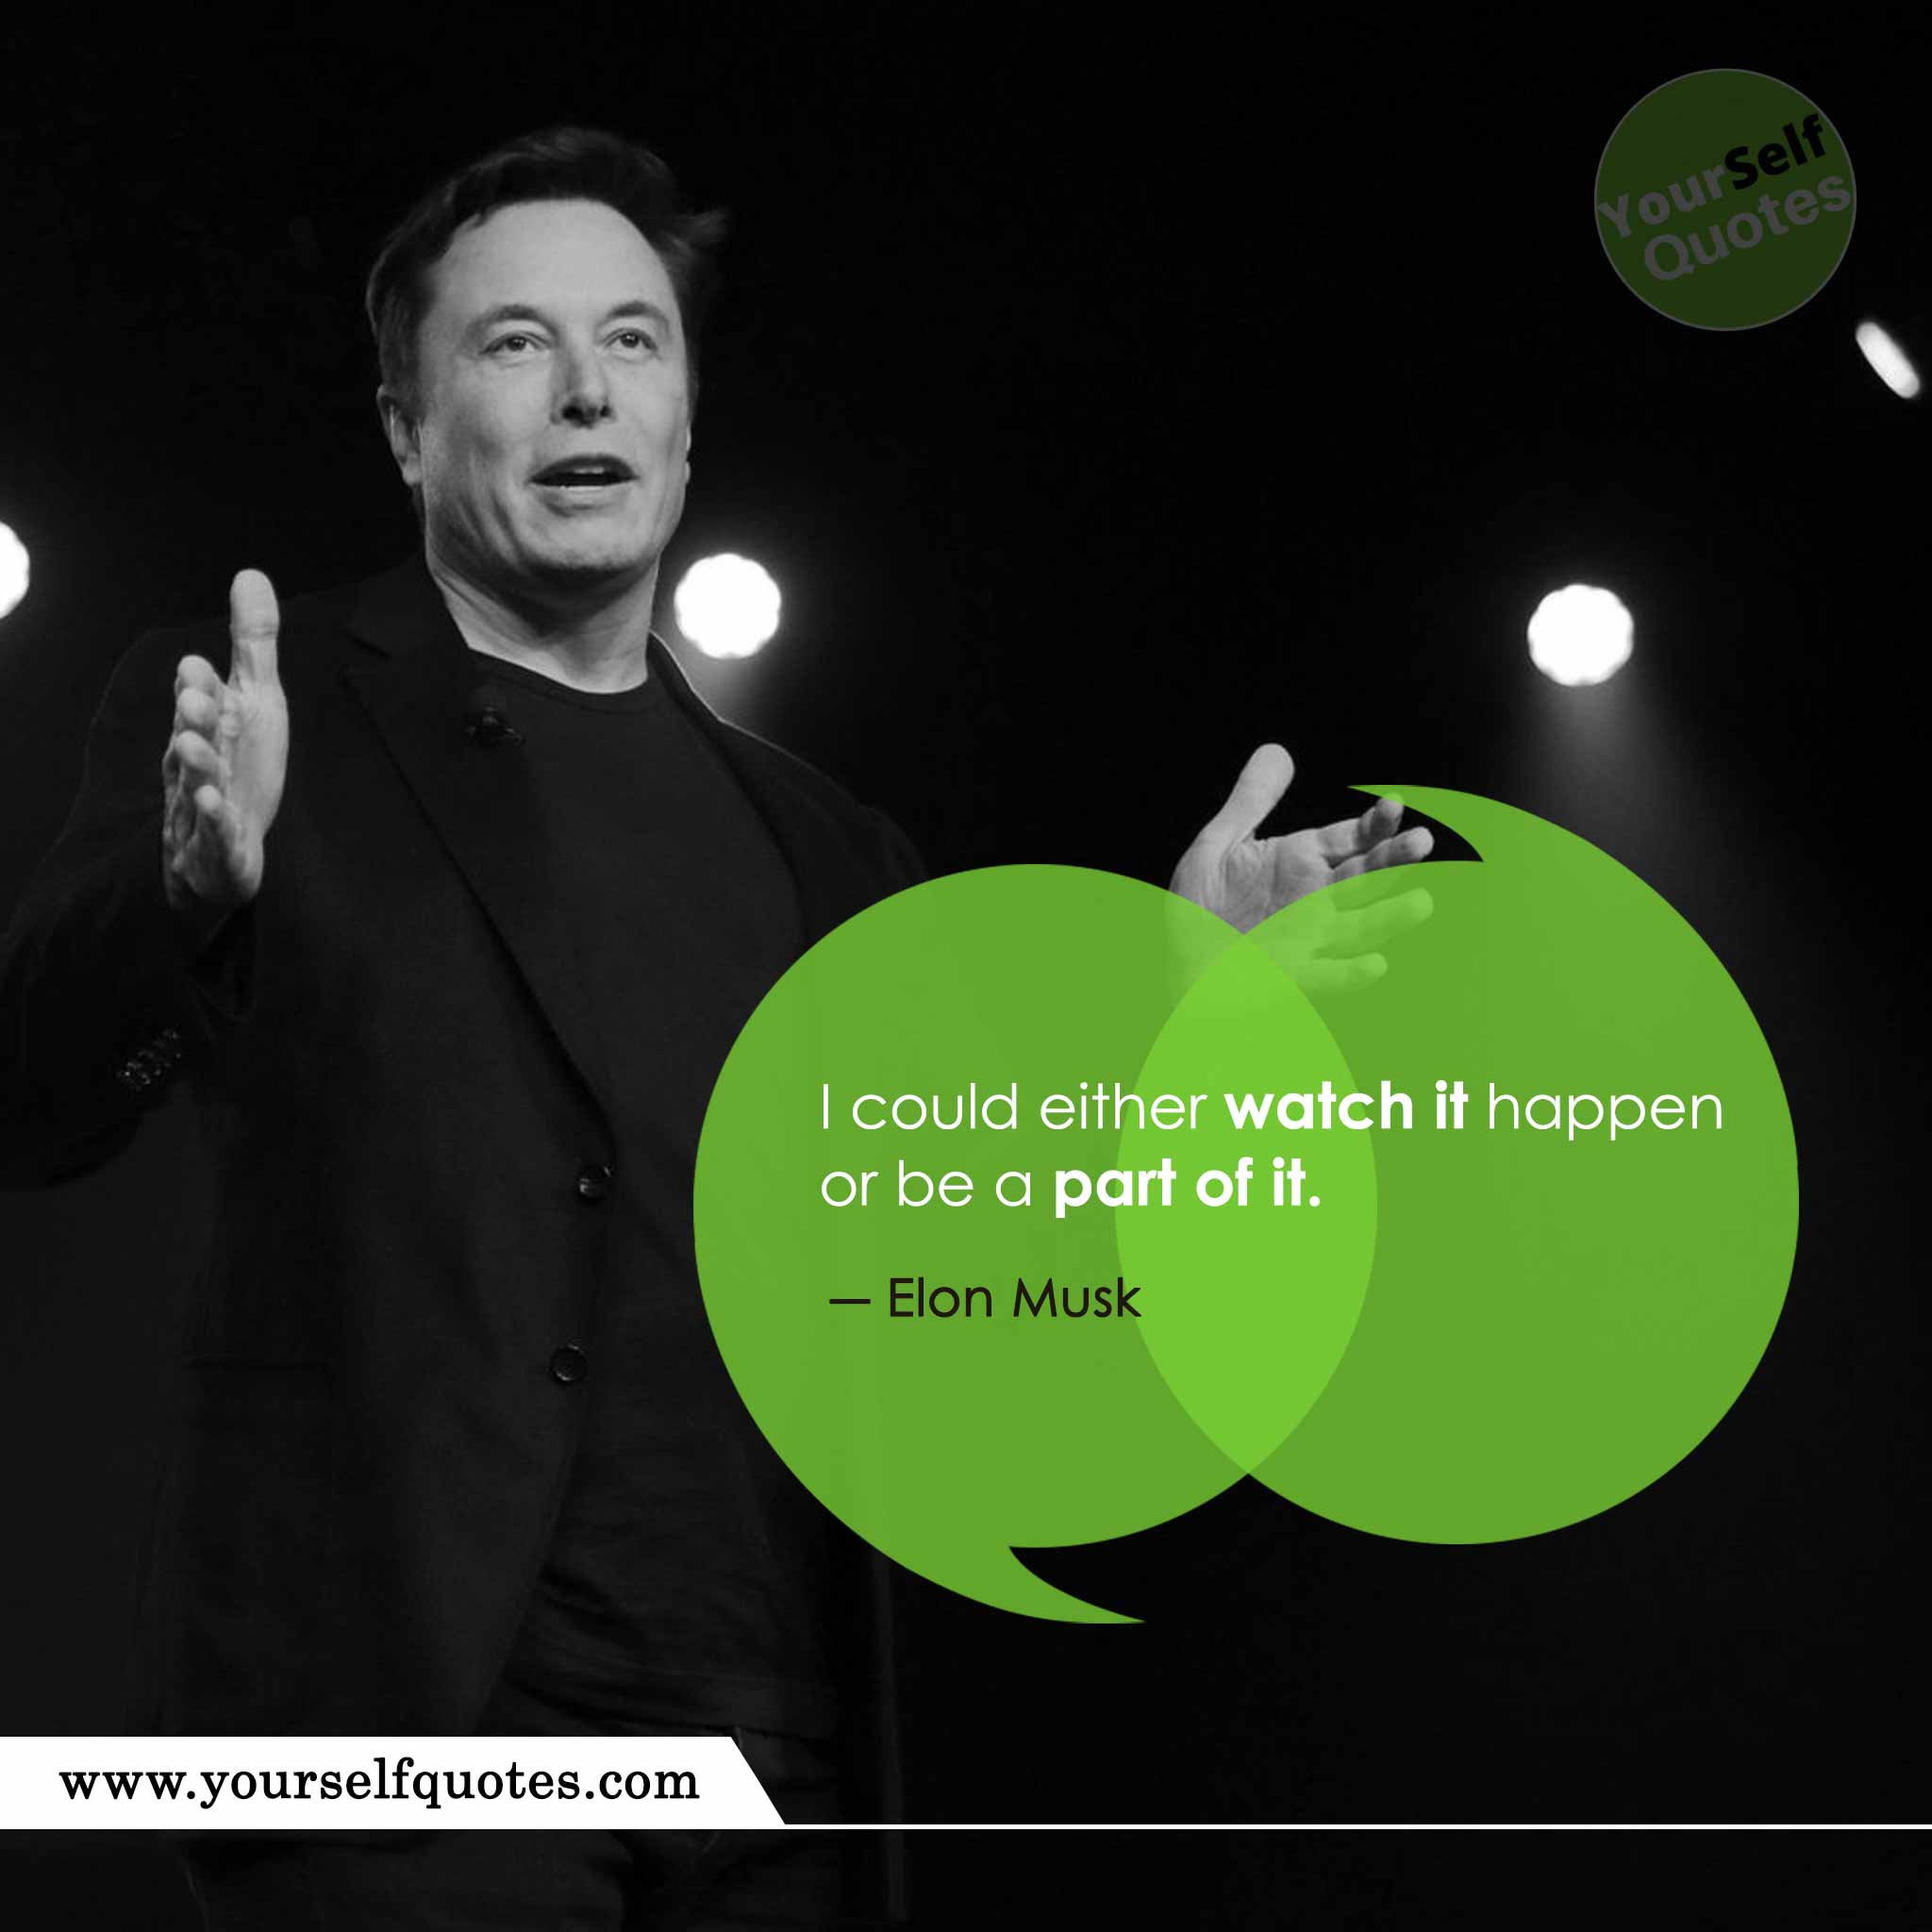 Elon Musk Quotes Wallpaper